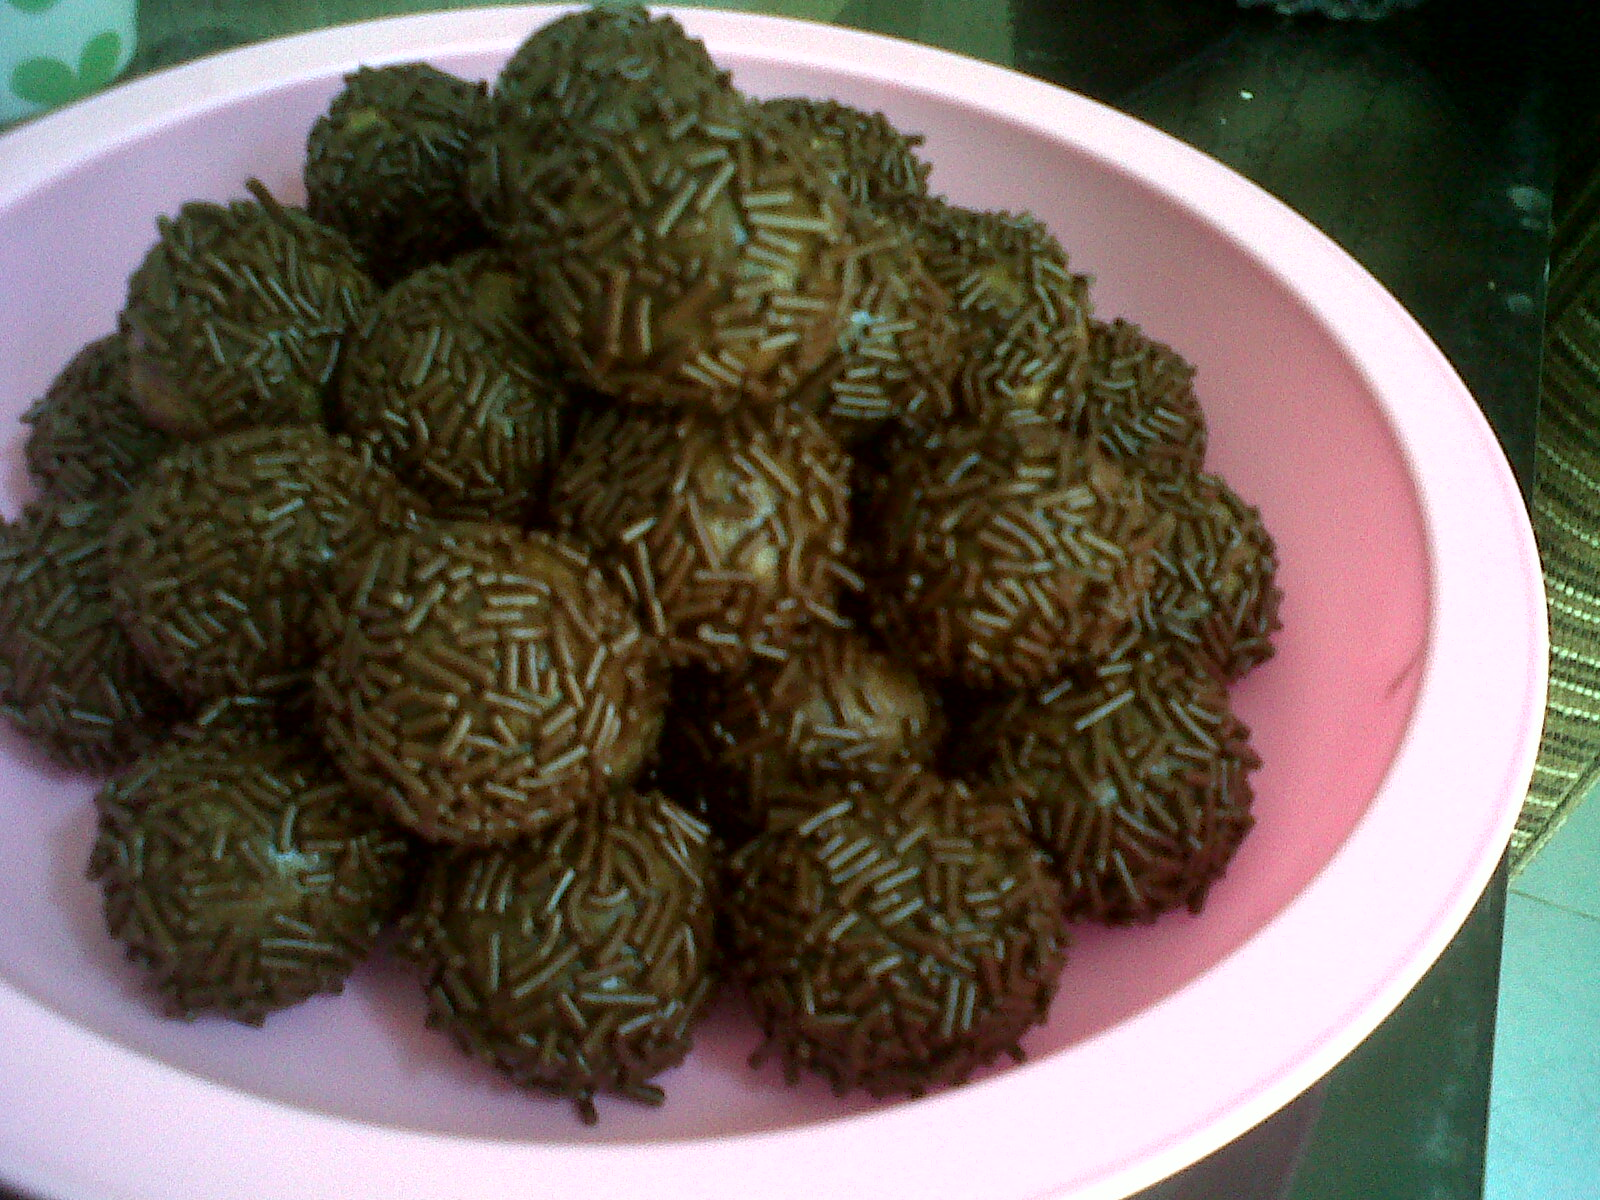 Resep Kue Kering Bola Bola Coklat | 2016 Car Release Date